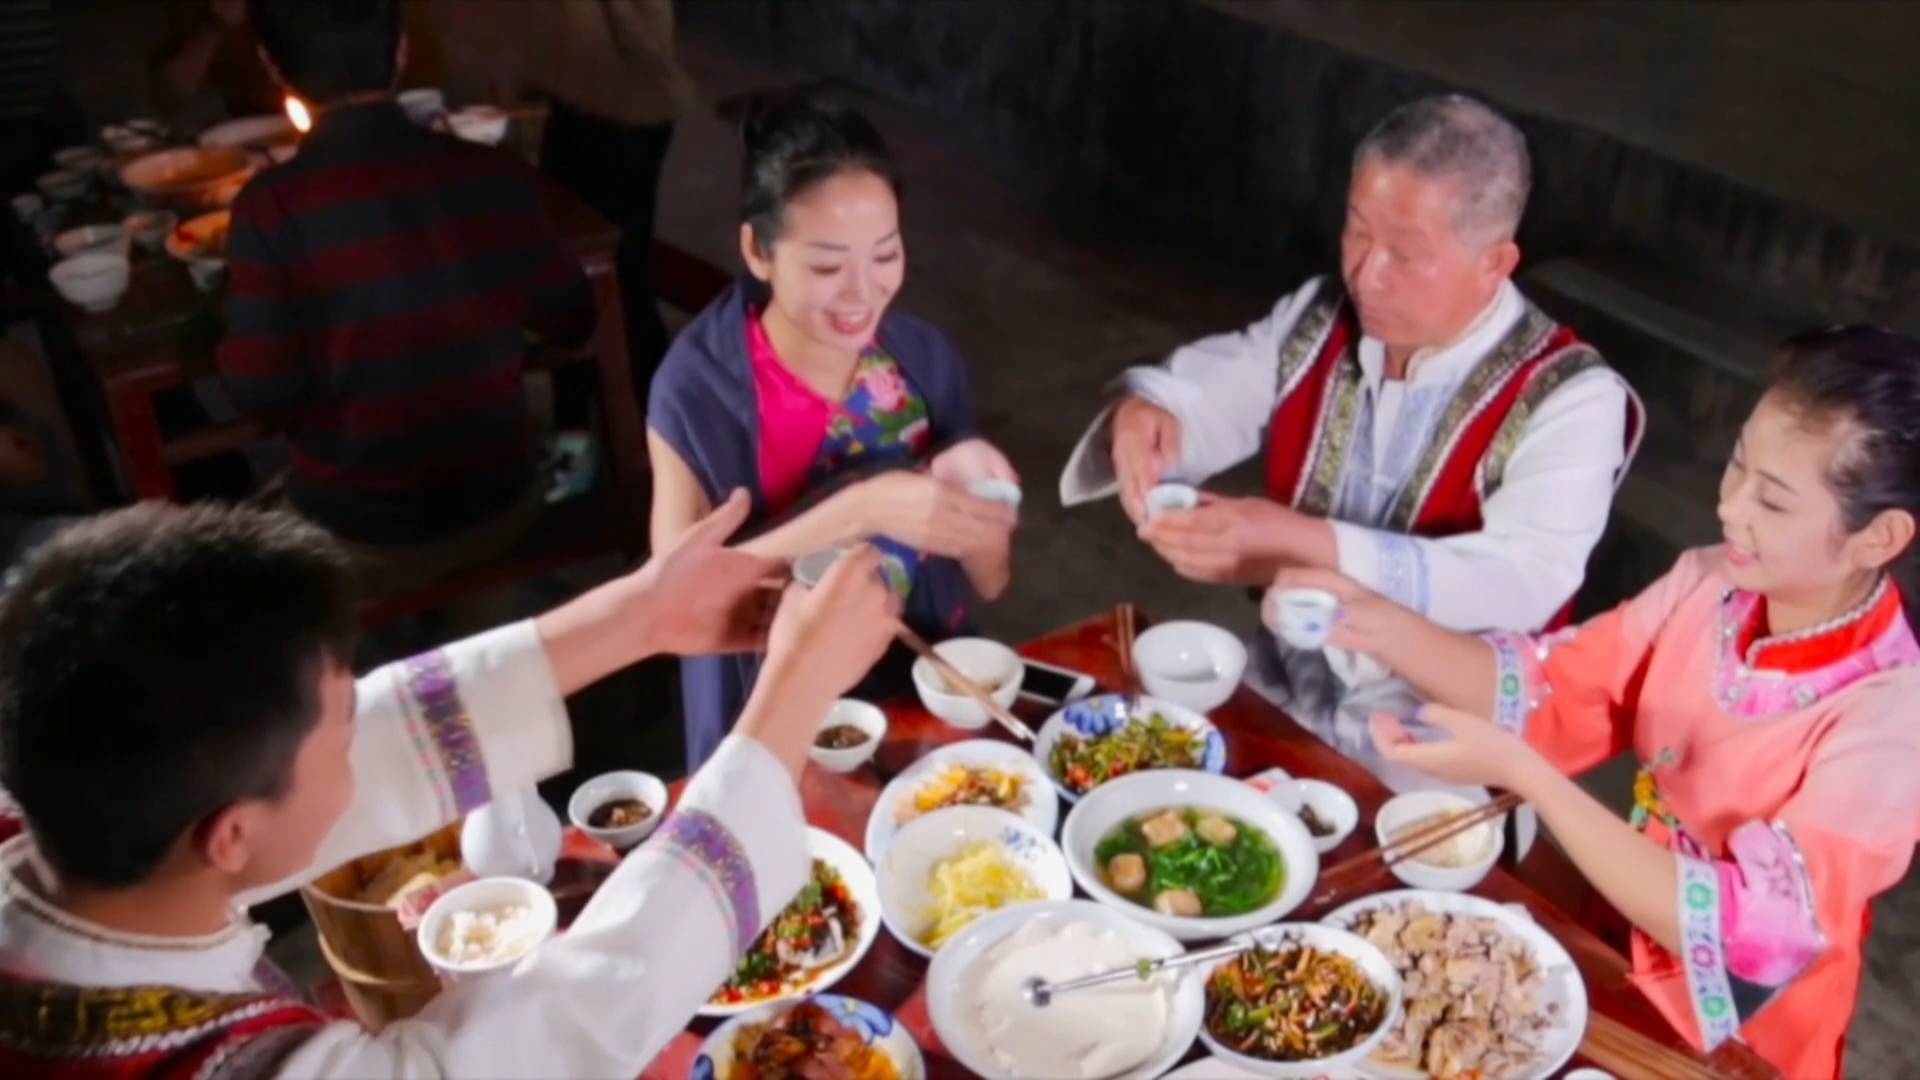 Intangible cultural heritage enriches villagers